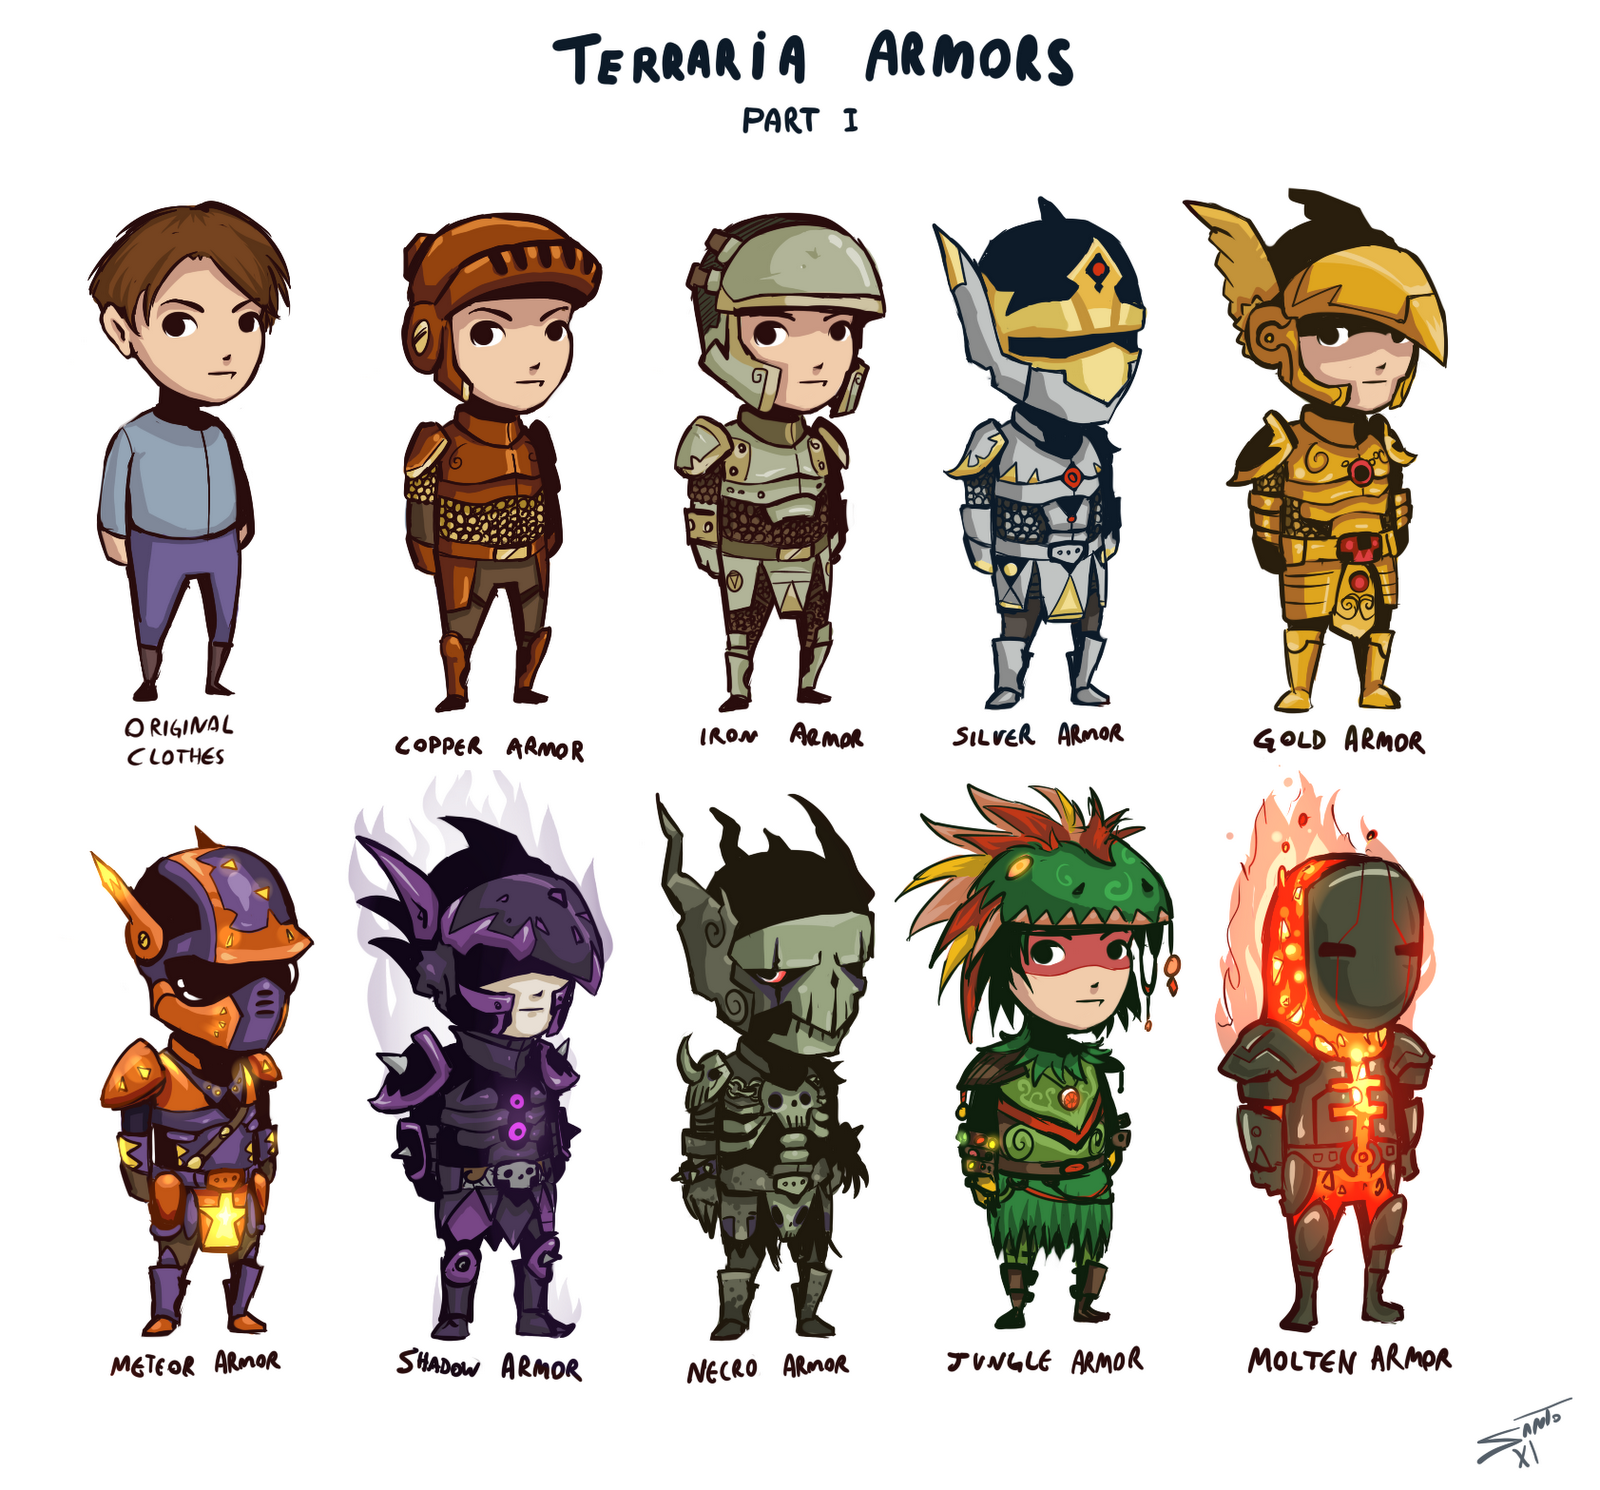 Terraria sprites armor illustration video games pinterest terraria sprites armor illustration publicscrutiny Image collections